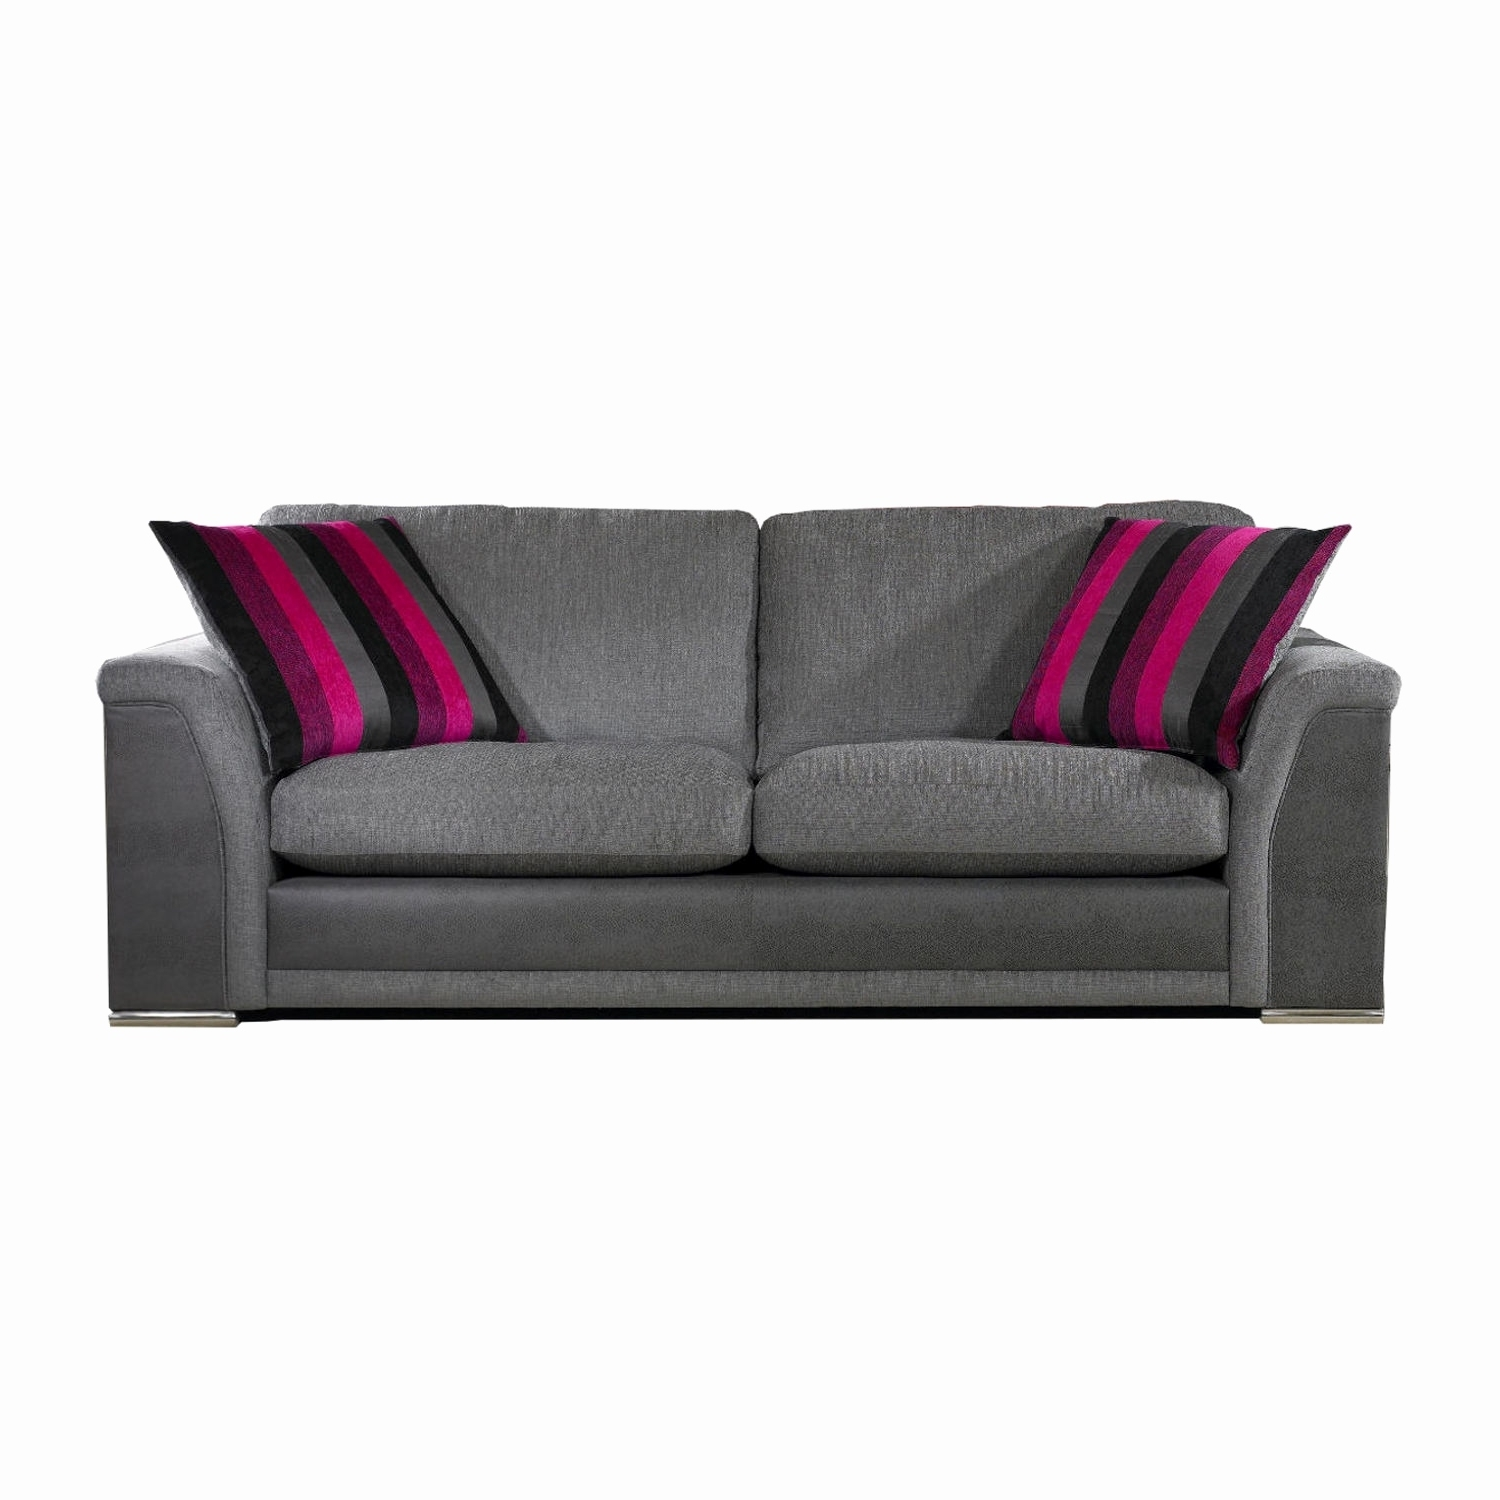 2017 Fresh High Point Sofa 2018 – Couches And Sofas Ideas With Regard To High Point Nc Sectional Sofas (View 11 of 15)